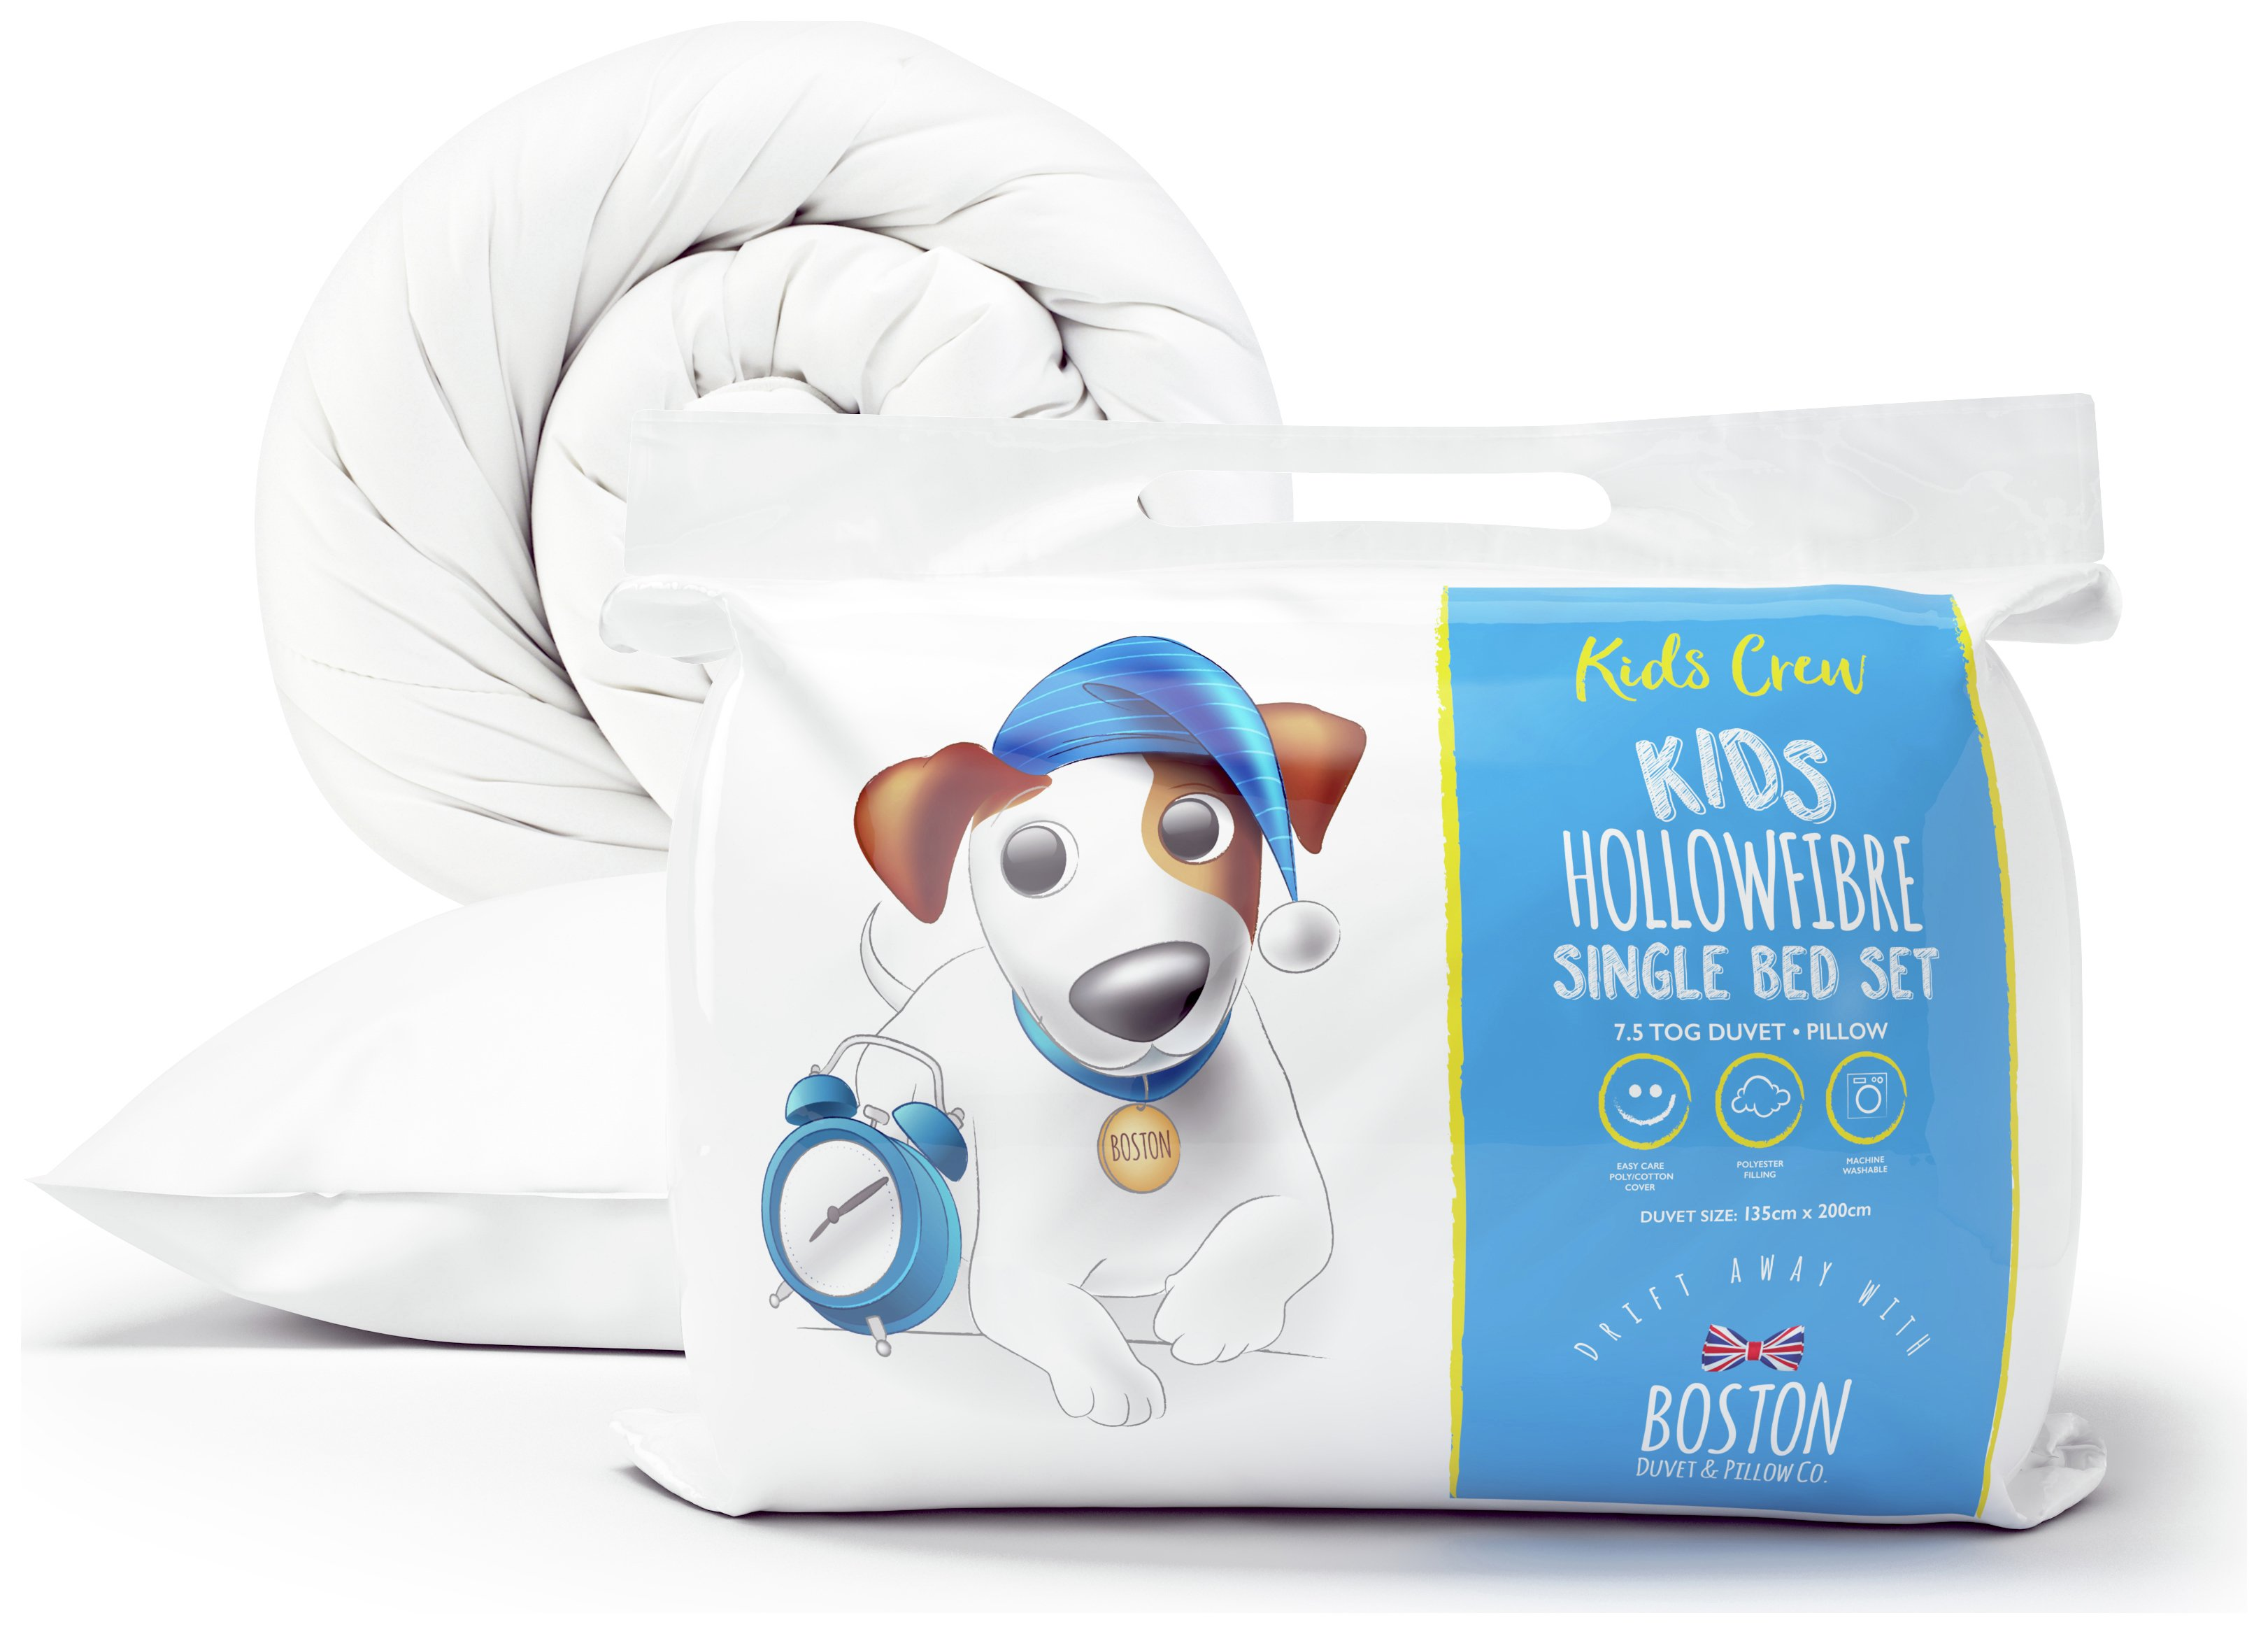 Boston Kids Crew 7.5 Tog Duvet and Pillow Set